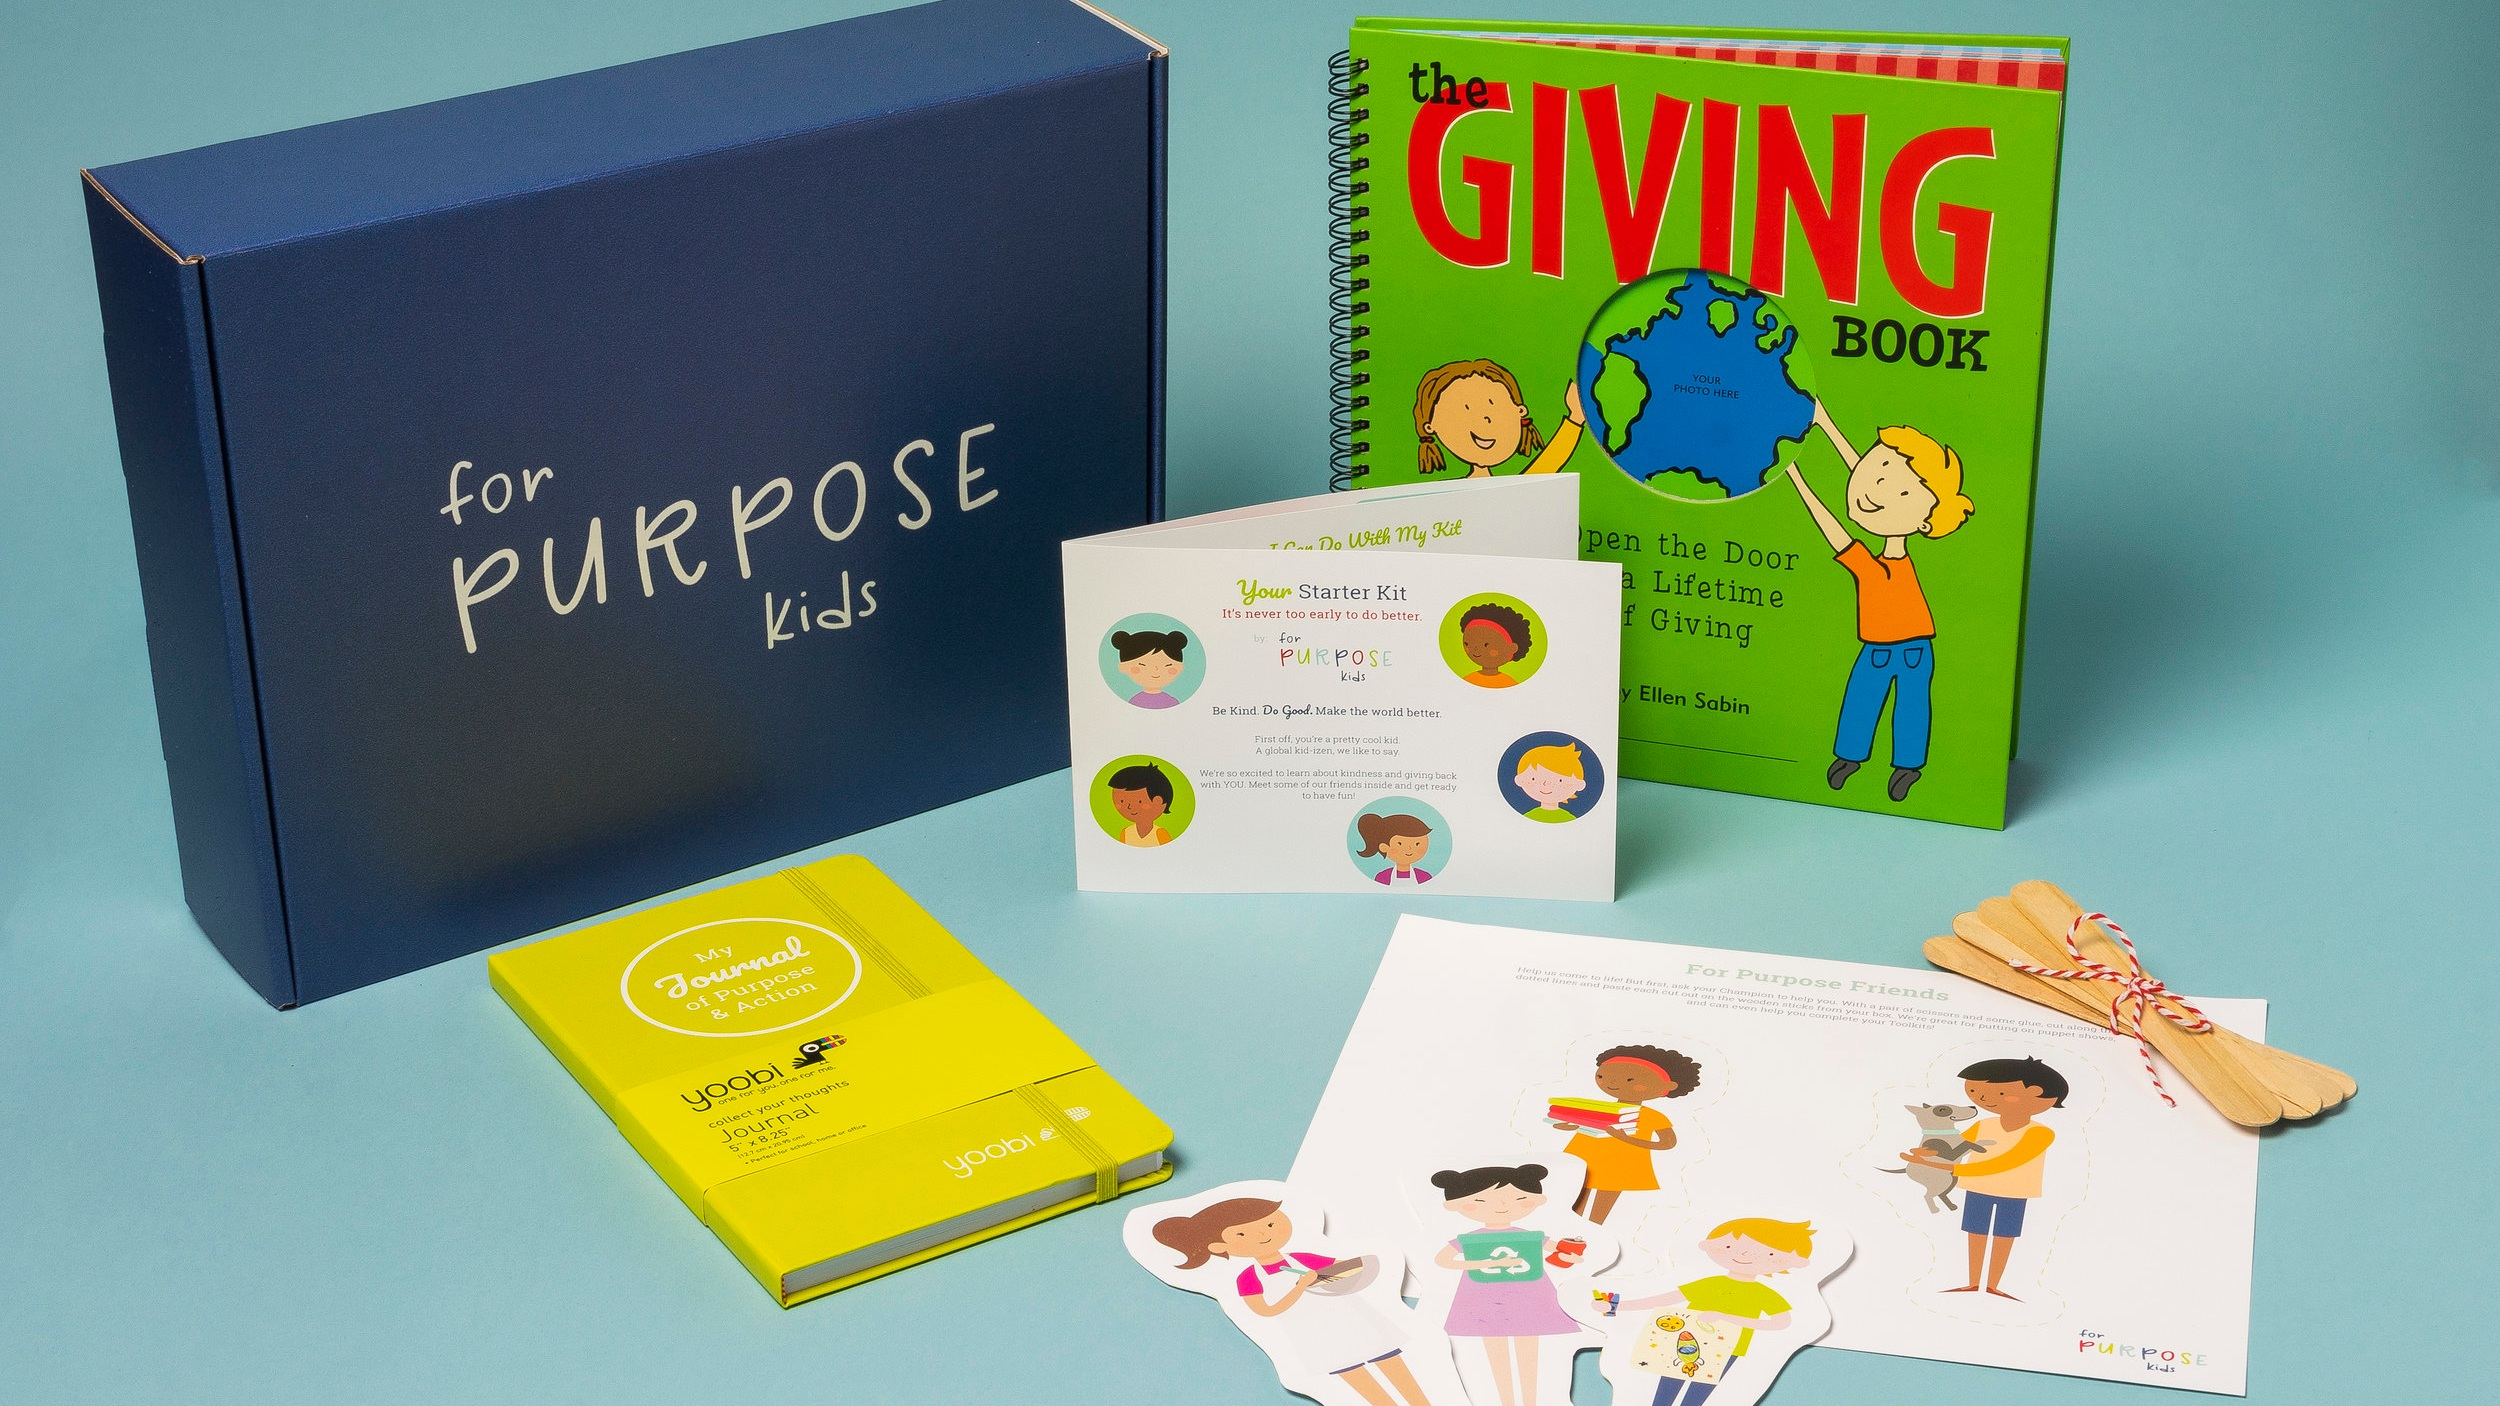 For Purpose Kids Conscious Brands